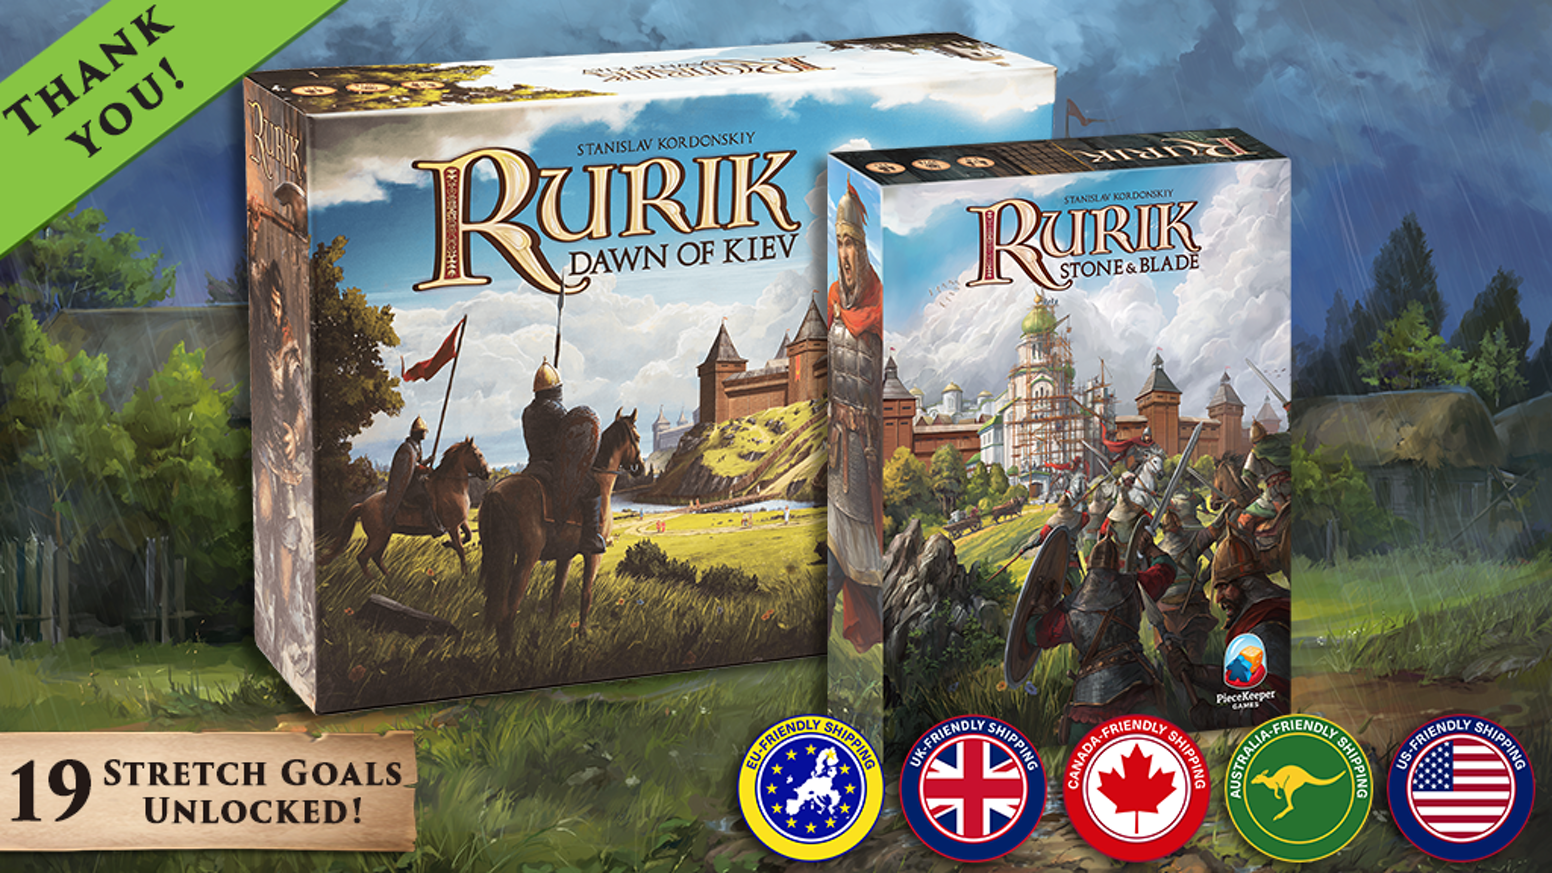 Seize your destiny and claim the throne! The first expansion to the critically acclaimed euro-style board game, Rurik: Dawn of Kiev.